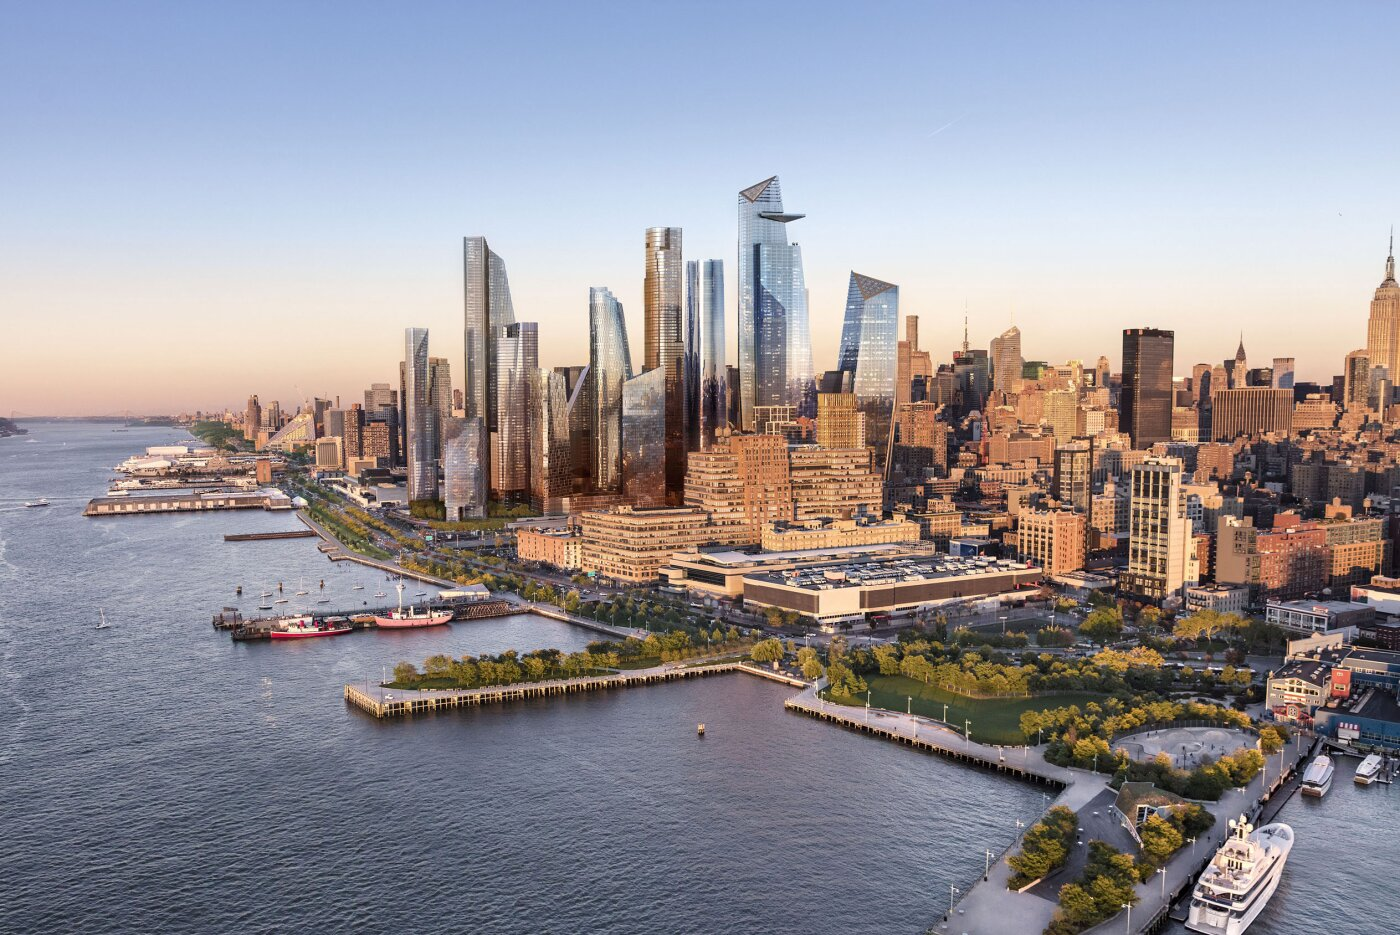 Hudson Yards / New York, USA